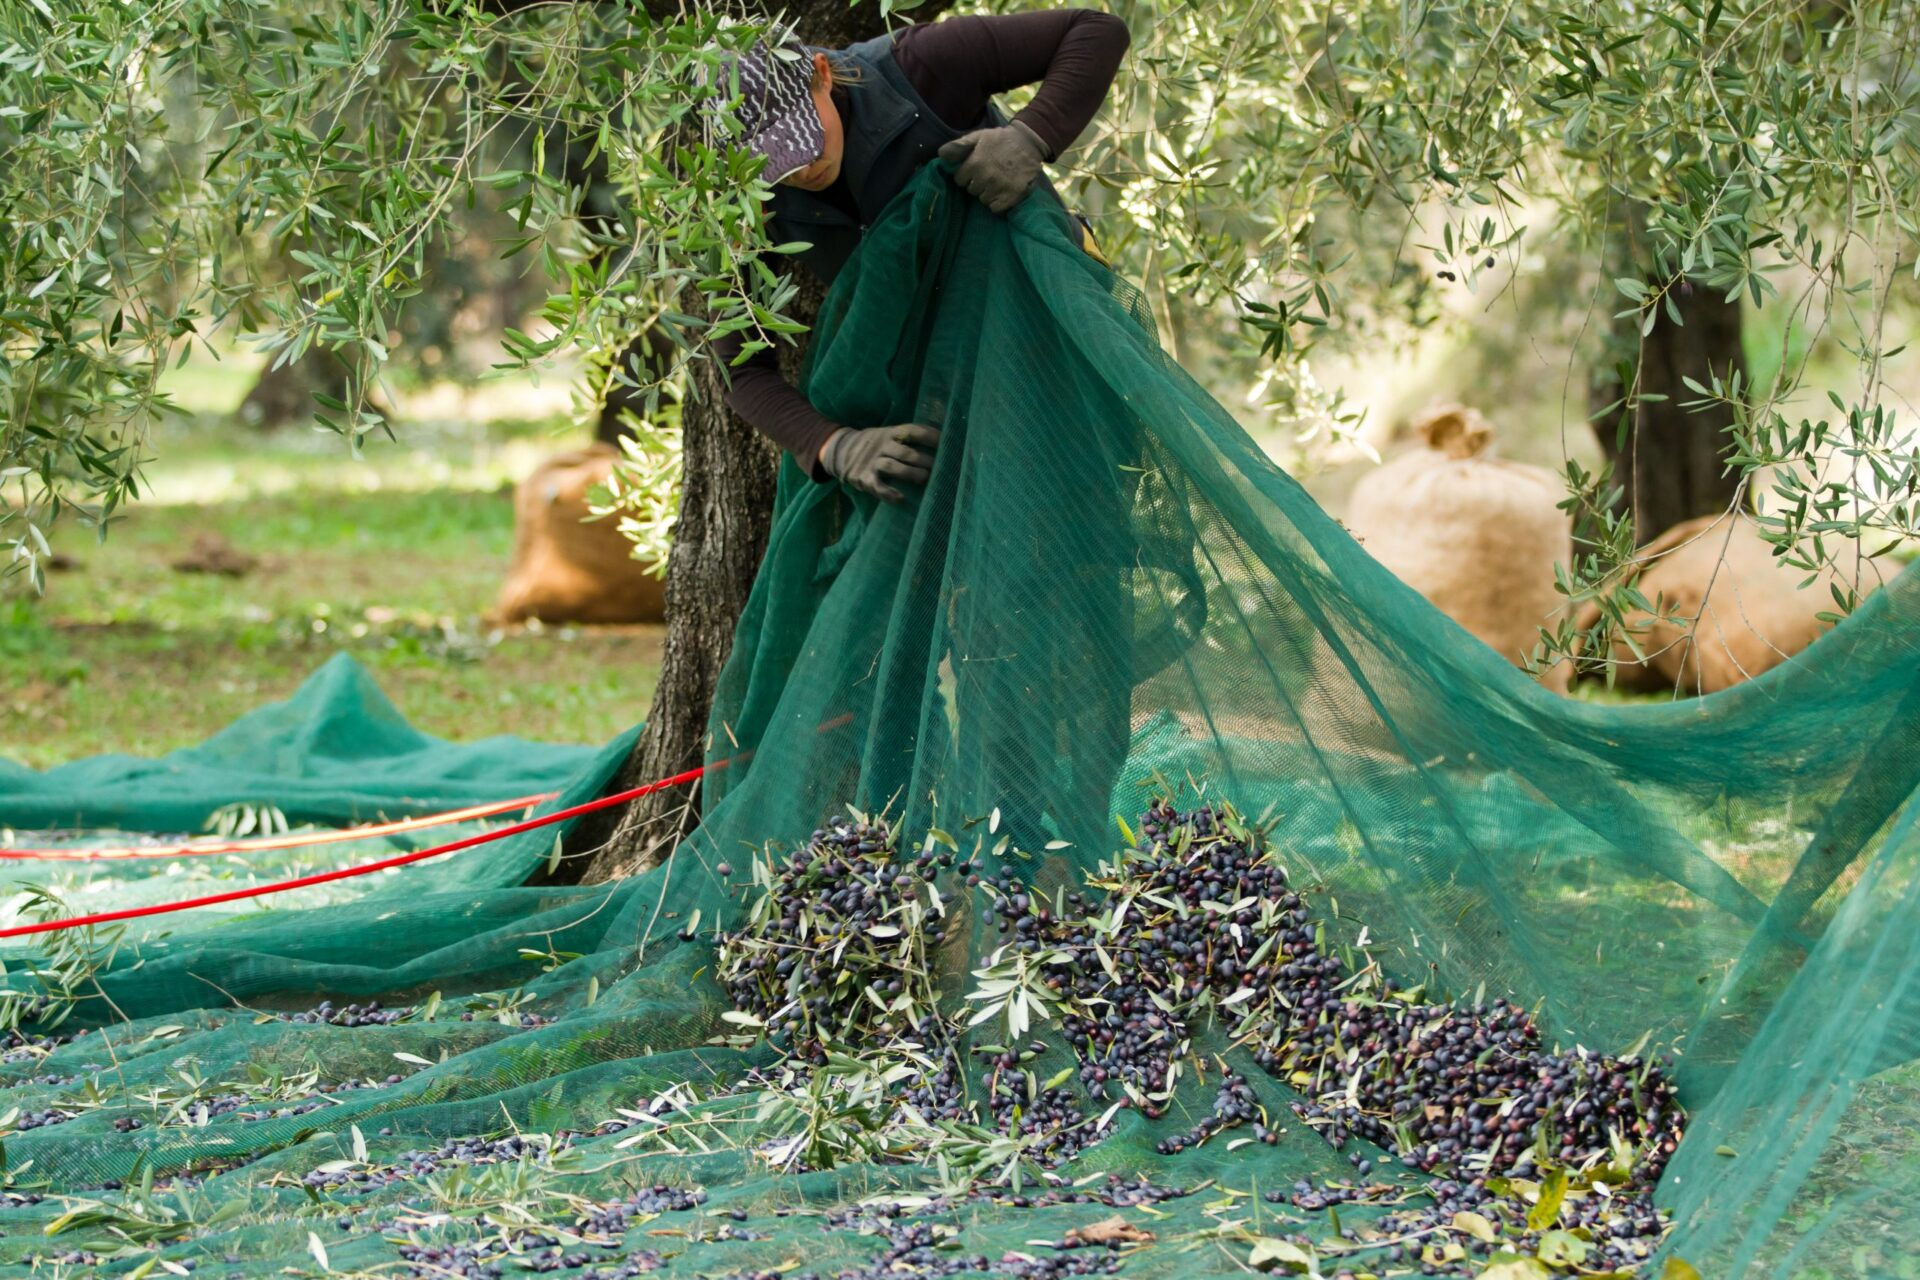 A local Farmer harvesting olives by hand with a net